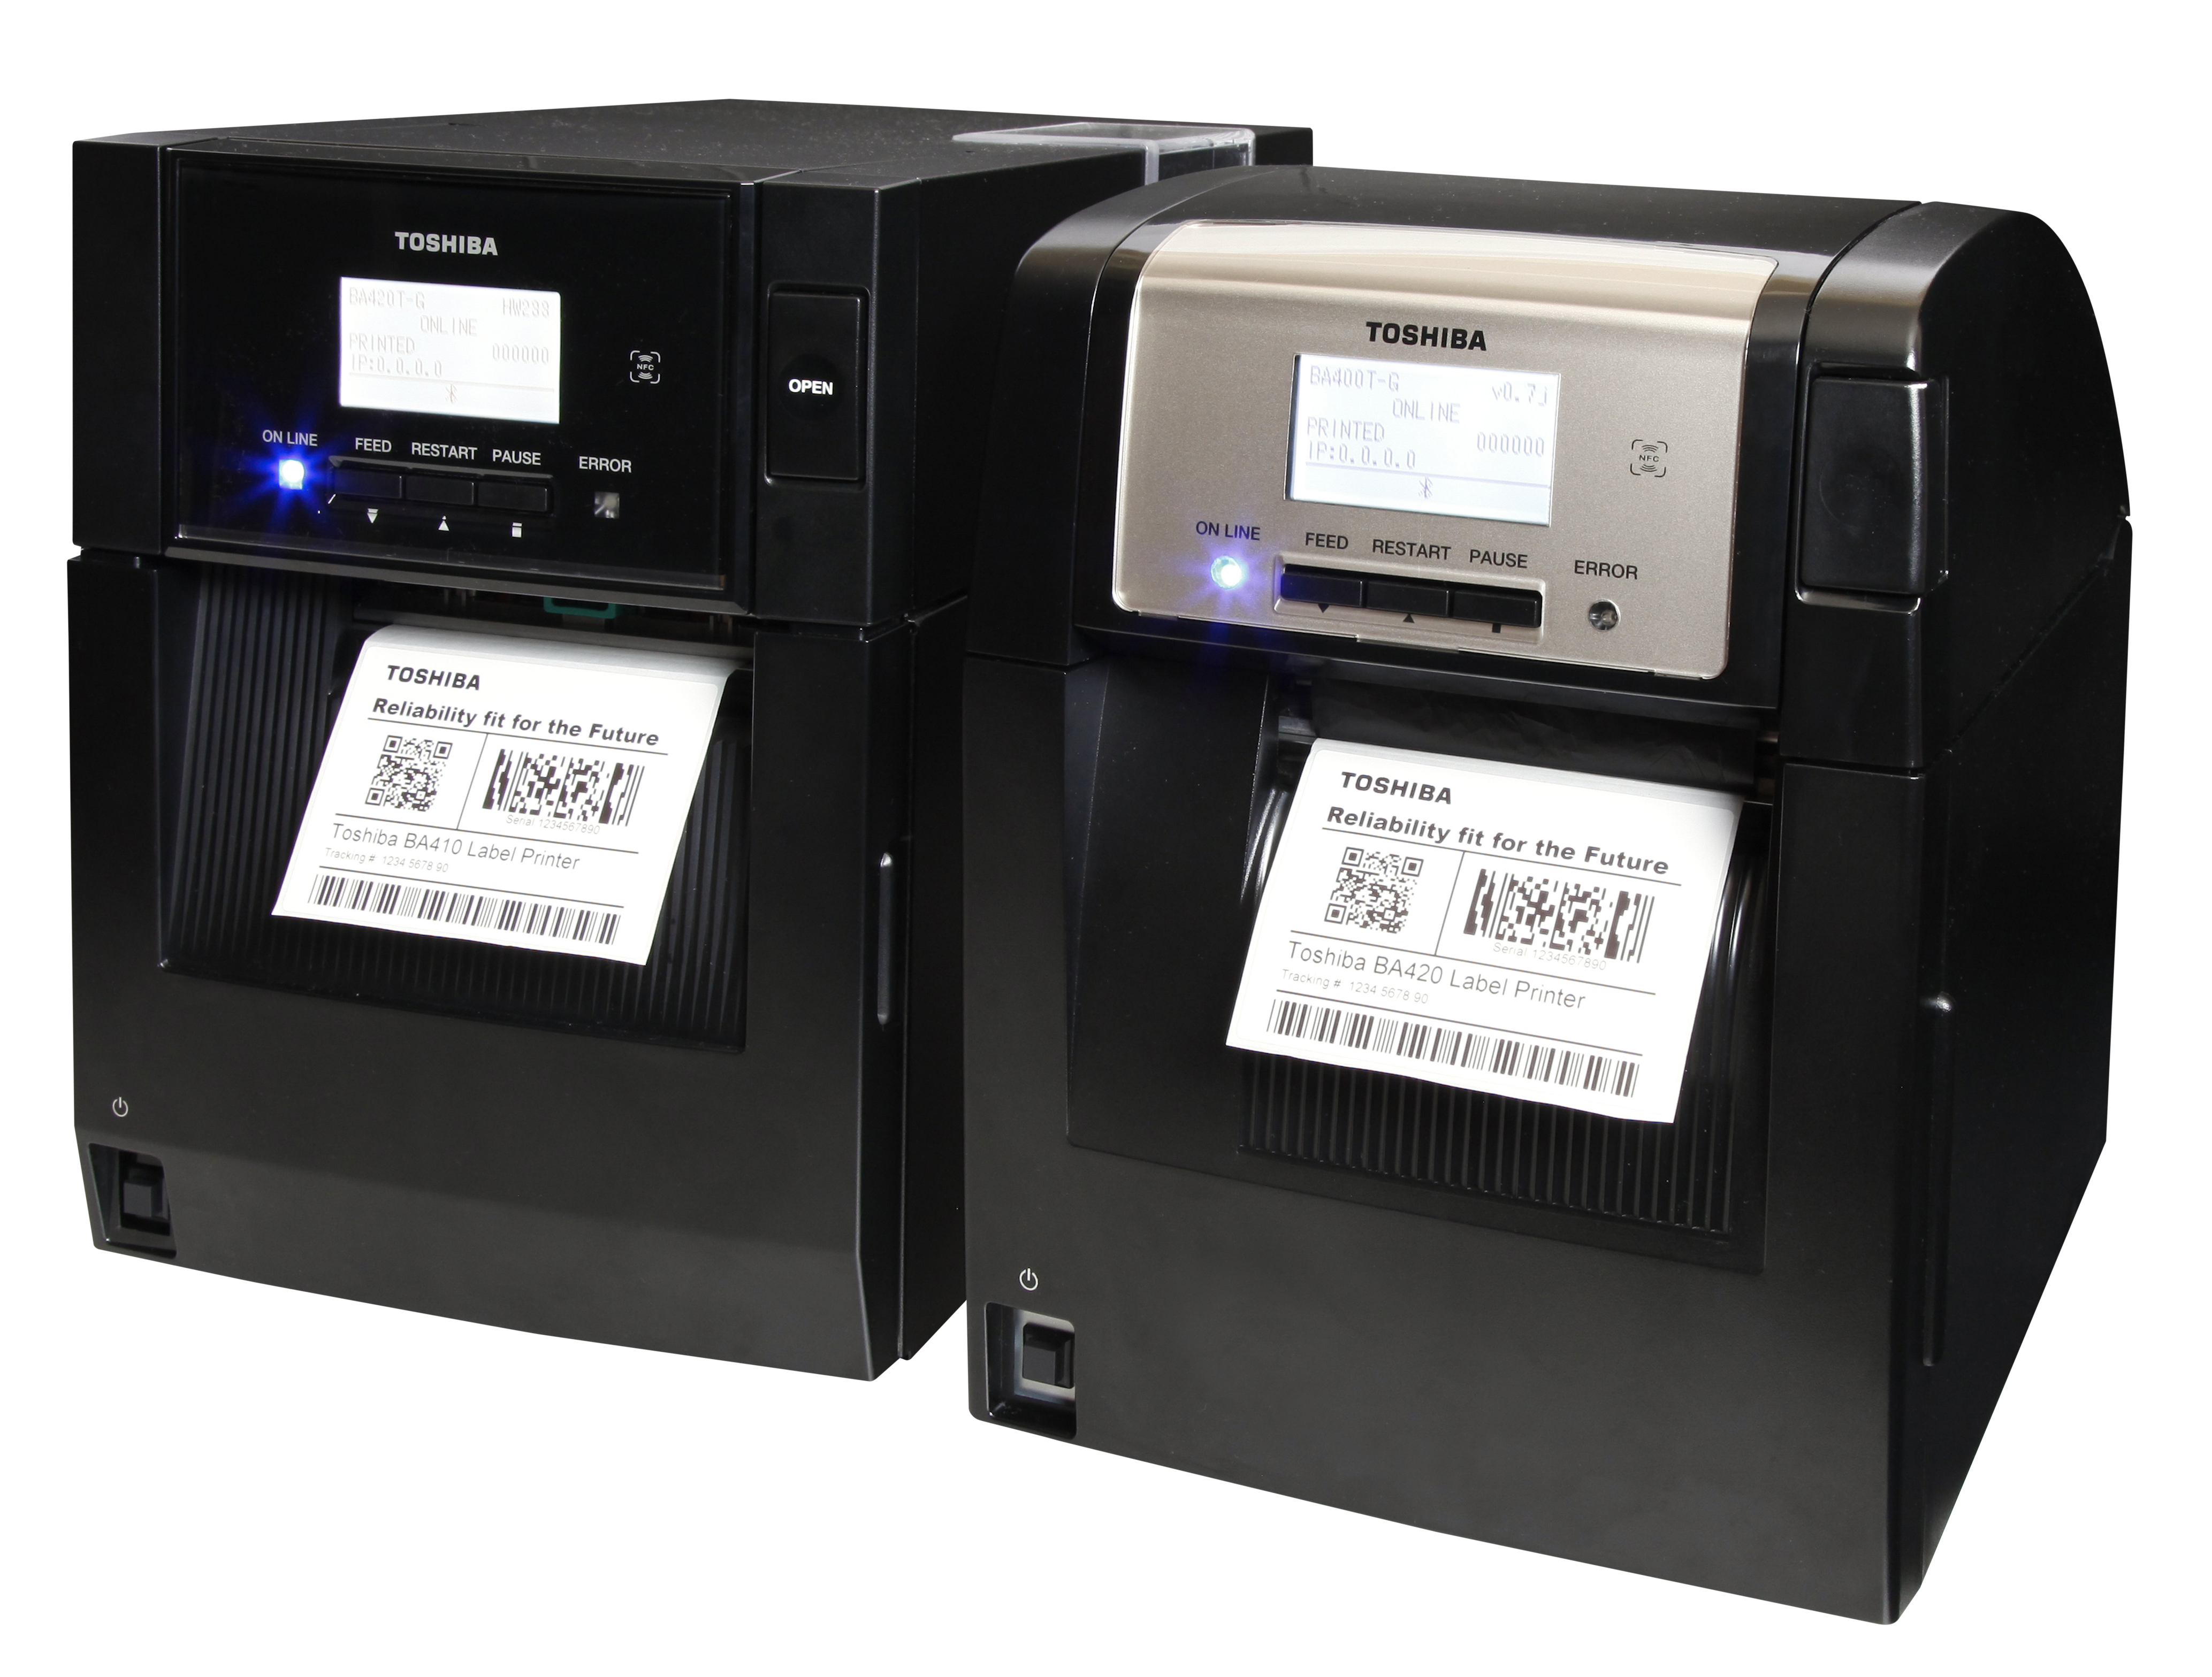 New Midrange, Industrial Toshiba Printers Accelerate and Simplify Labeling